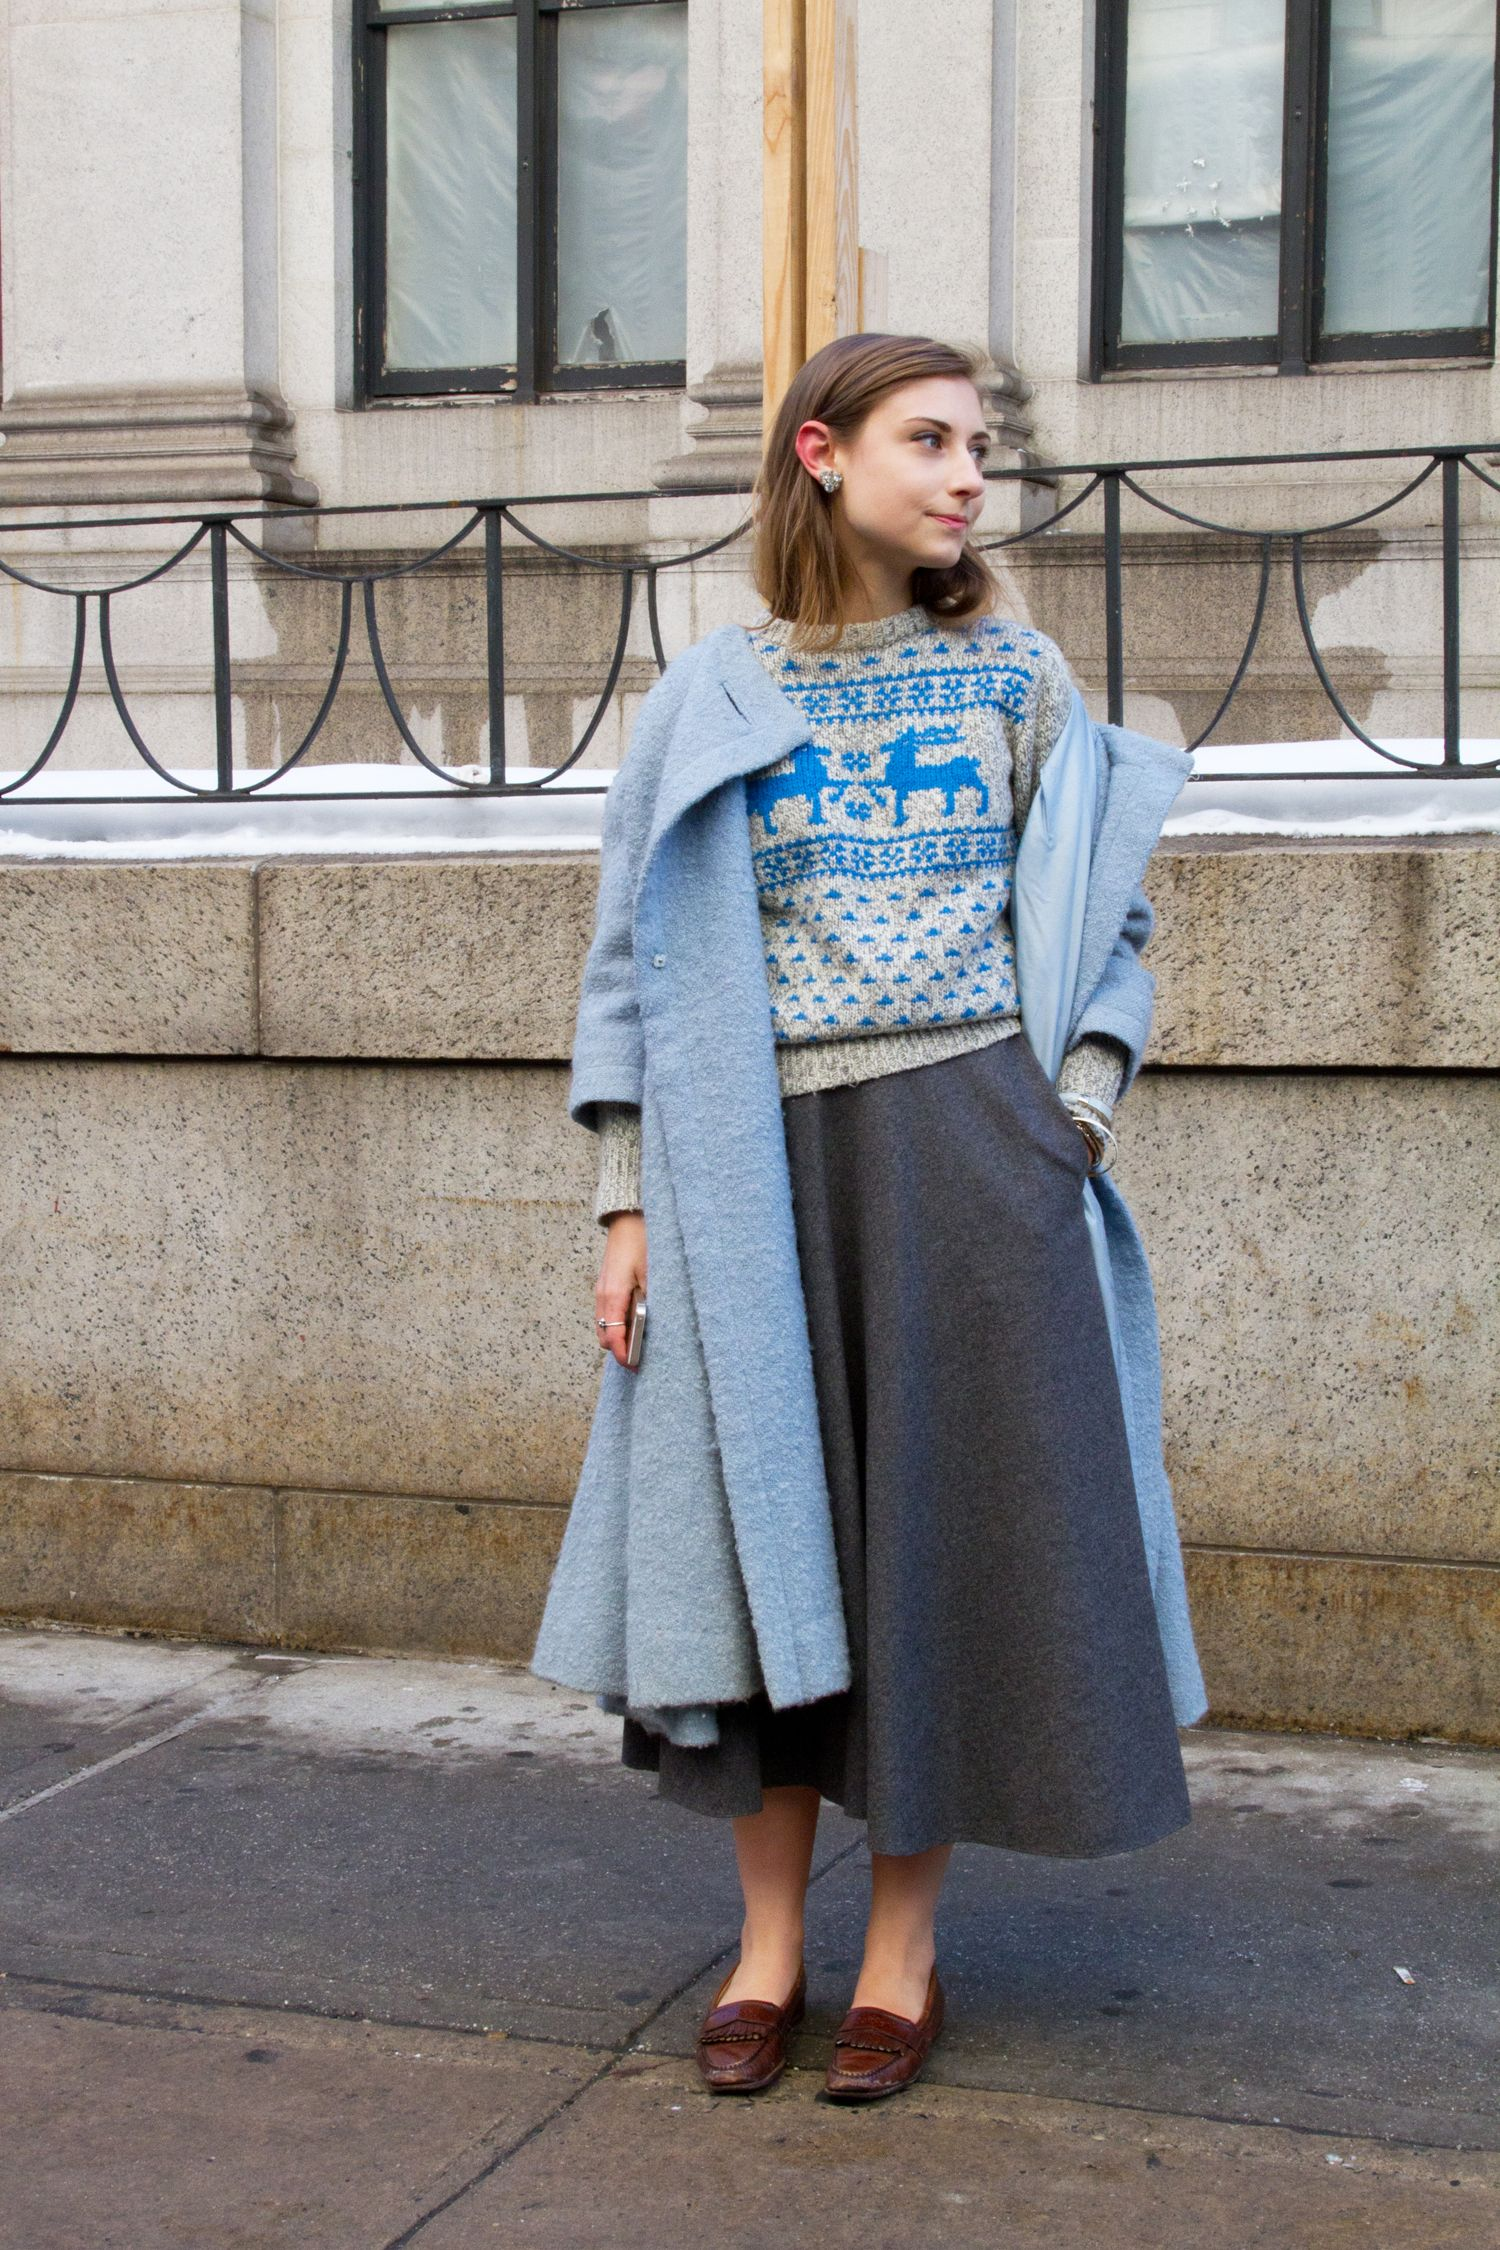 Street Style From New York Fashion Week, Day 5 | StyleCaster